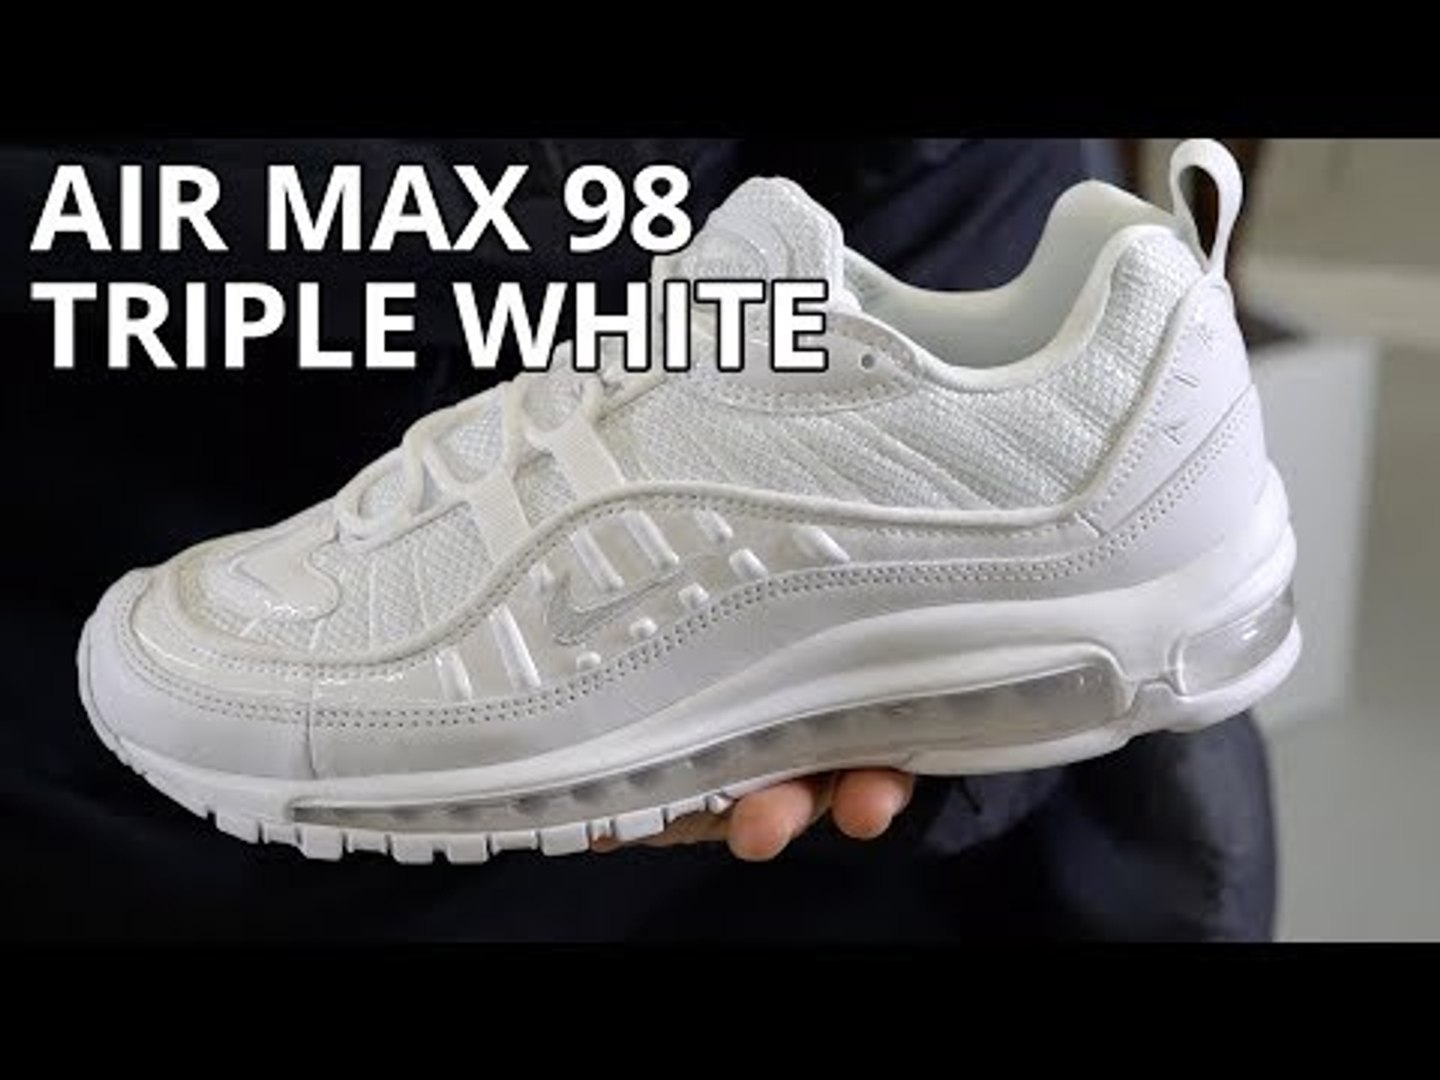 separation shoes c1502 15752 Nike Air Max 98 Triple White Review / Unboxing / On Feet Look